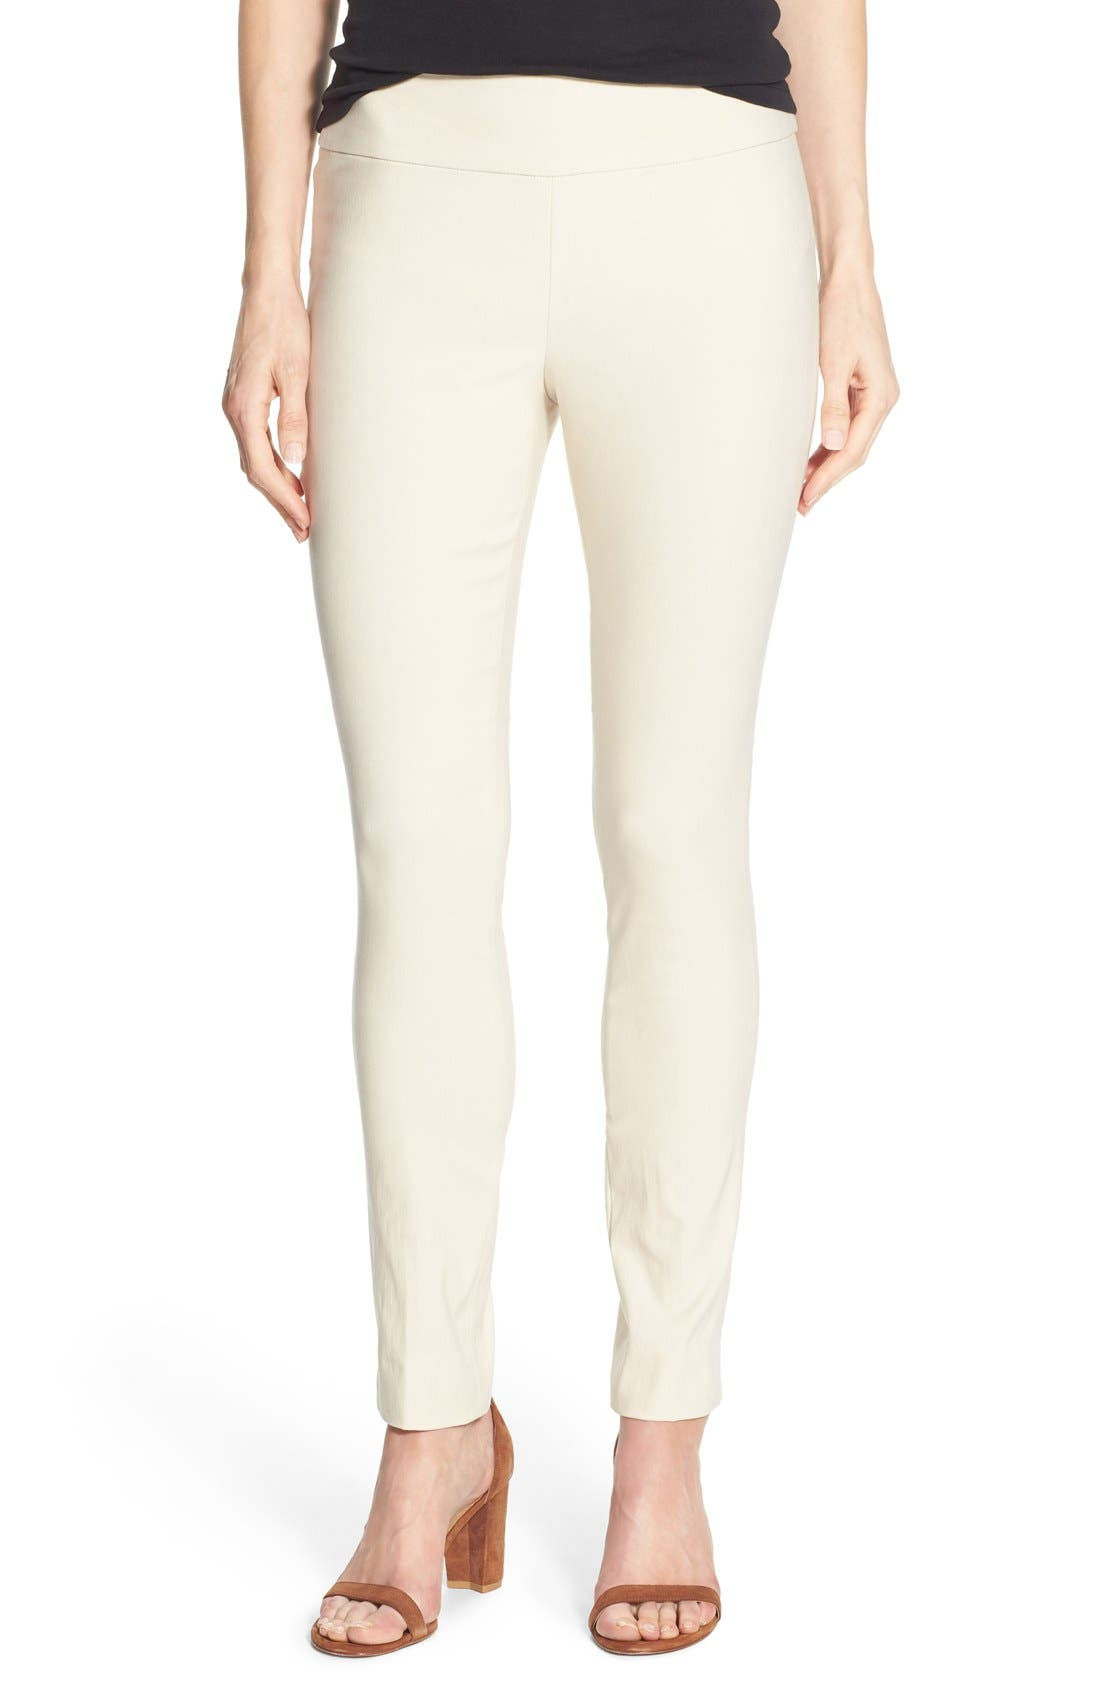 Alternate Image 1 Selected - NIC+ZOE 'The Wonder Stretch' Slim Leg Pants (Regular & Petite)